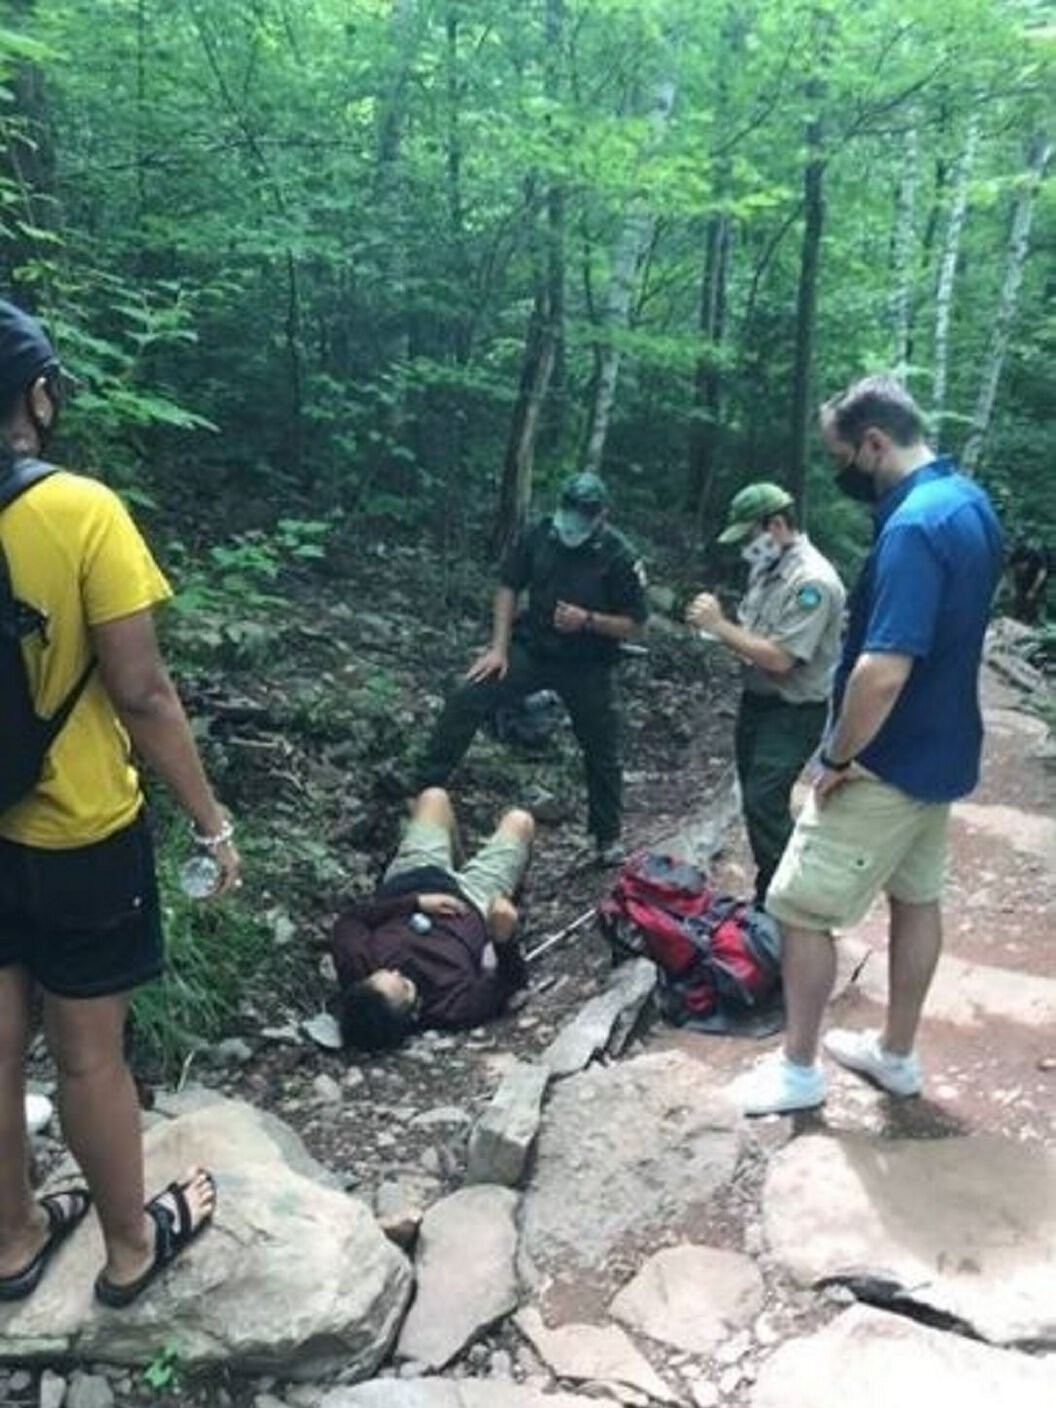 Rangers rescue hiker at Kaaterskill Falls